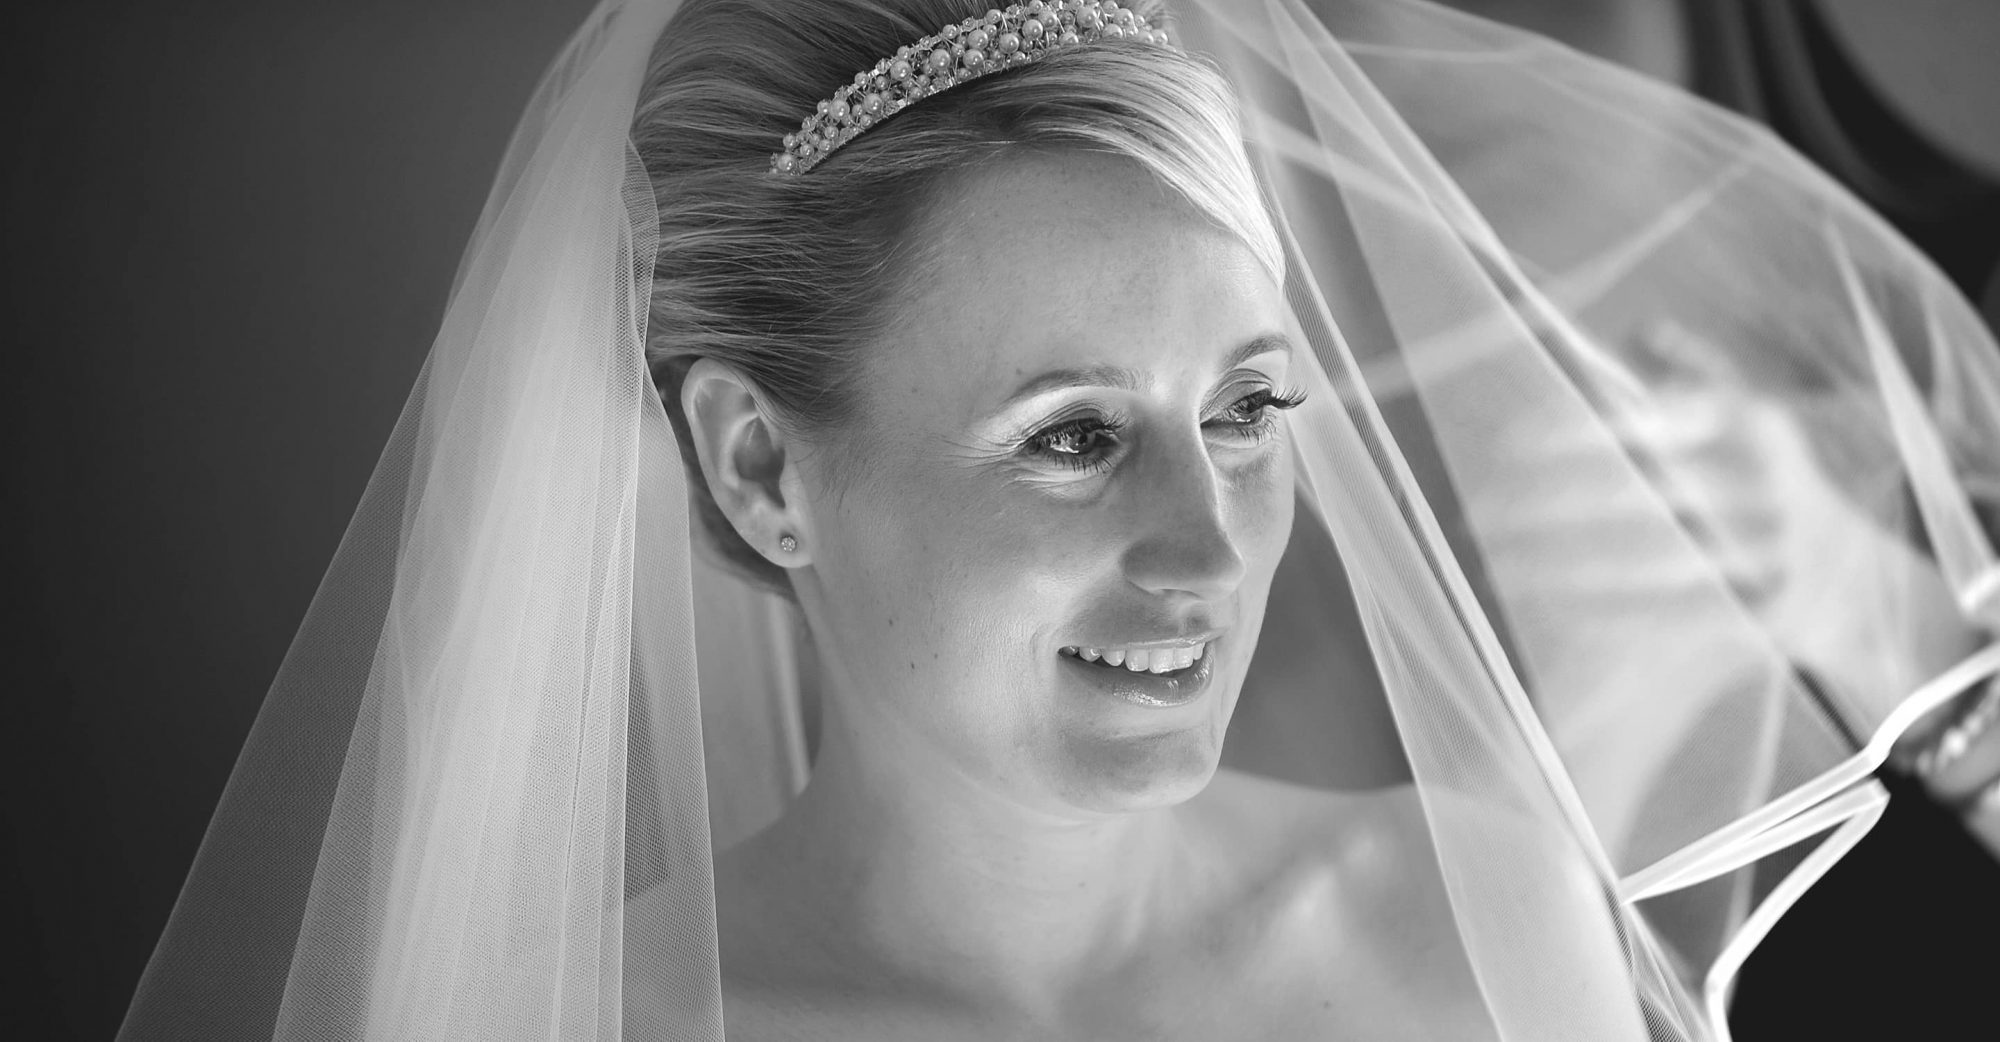 Suffolk Wedding Photo by Gregg Brown - Bride